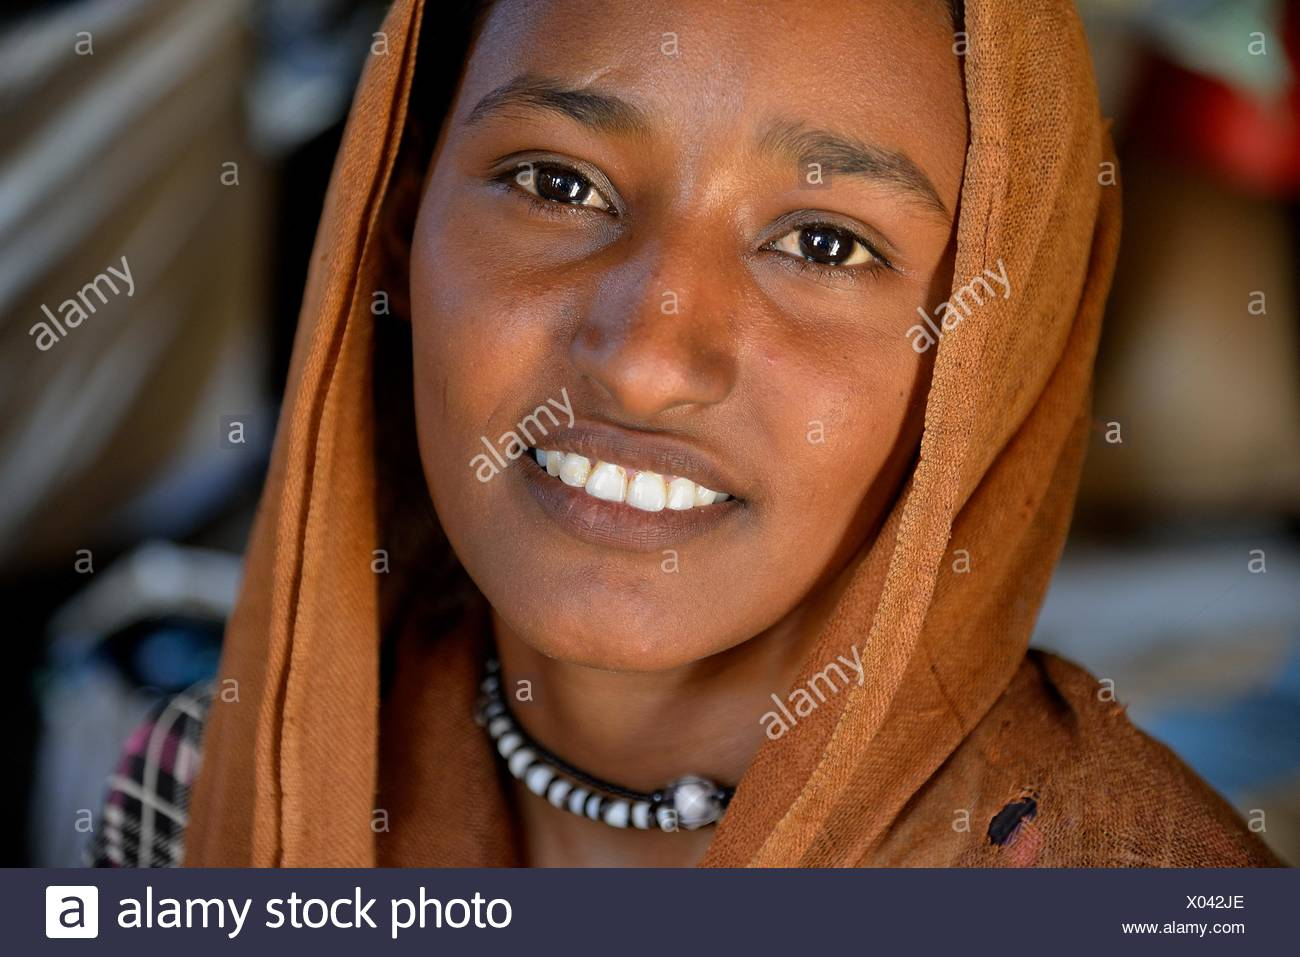 Young girl from the nomadic tribe of the Bush Arian with headgear, Portrait, Bayuda Desert, in Karima, Nubia, Northern Sudan - Stock Image